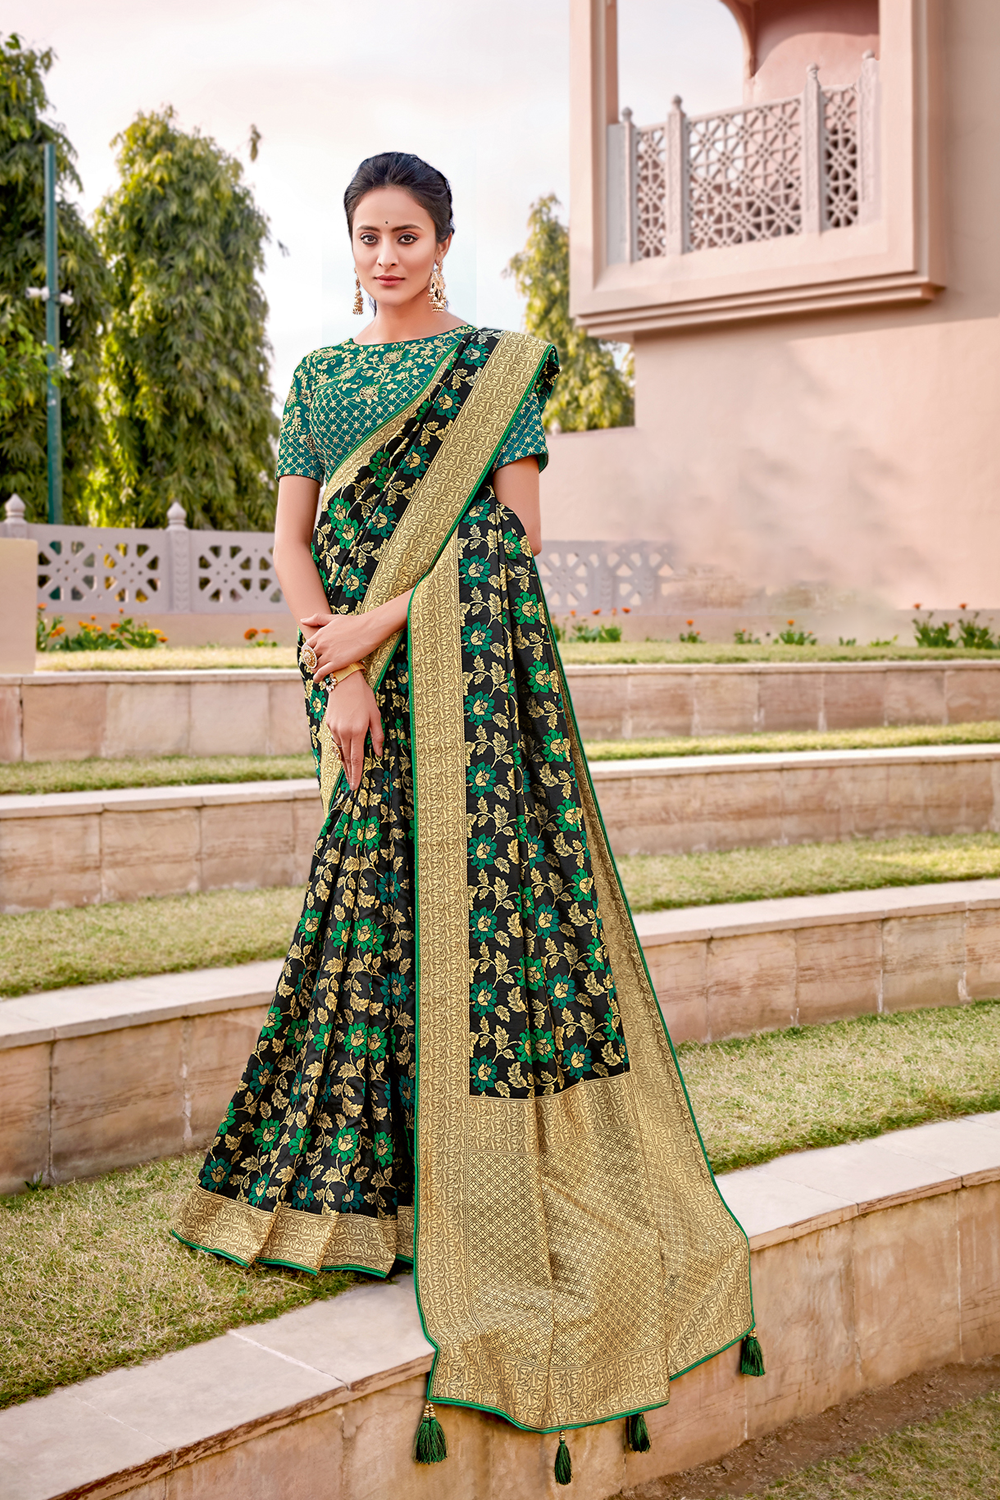 Adorned with the lotus motif  this earthy-green colored saree